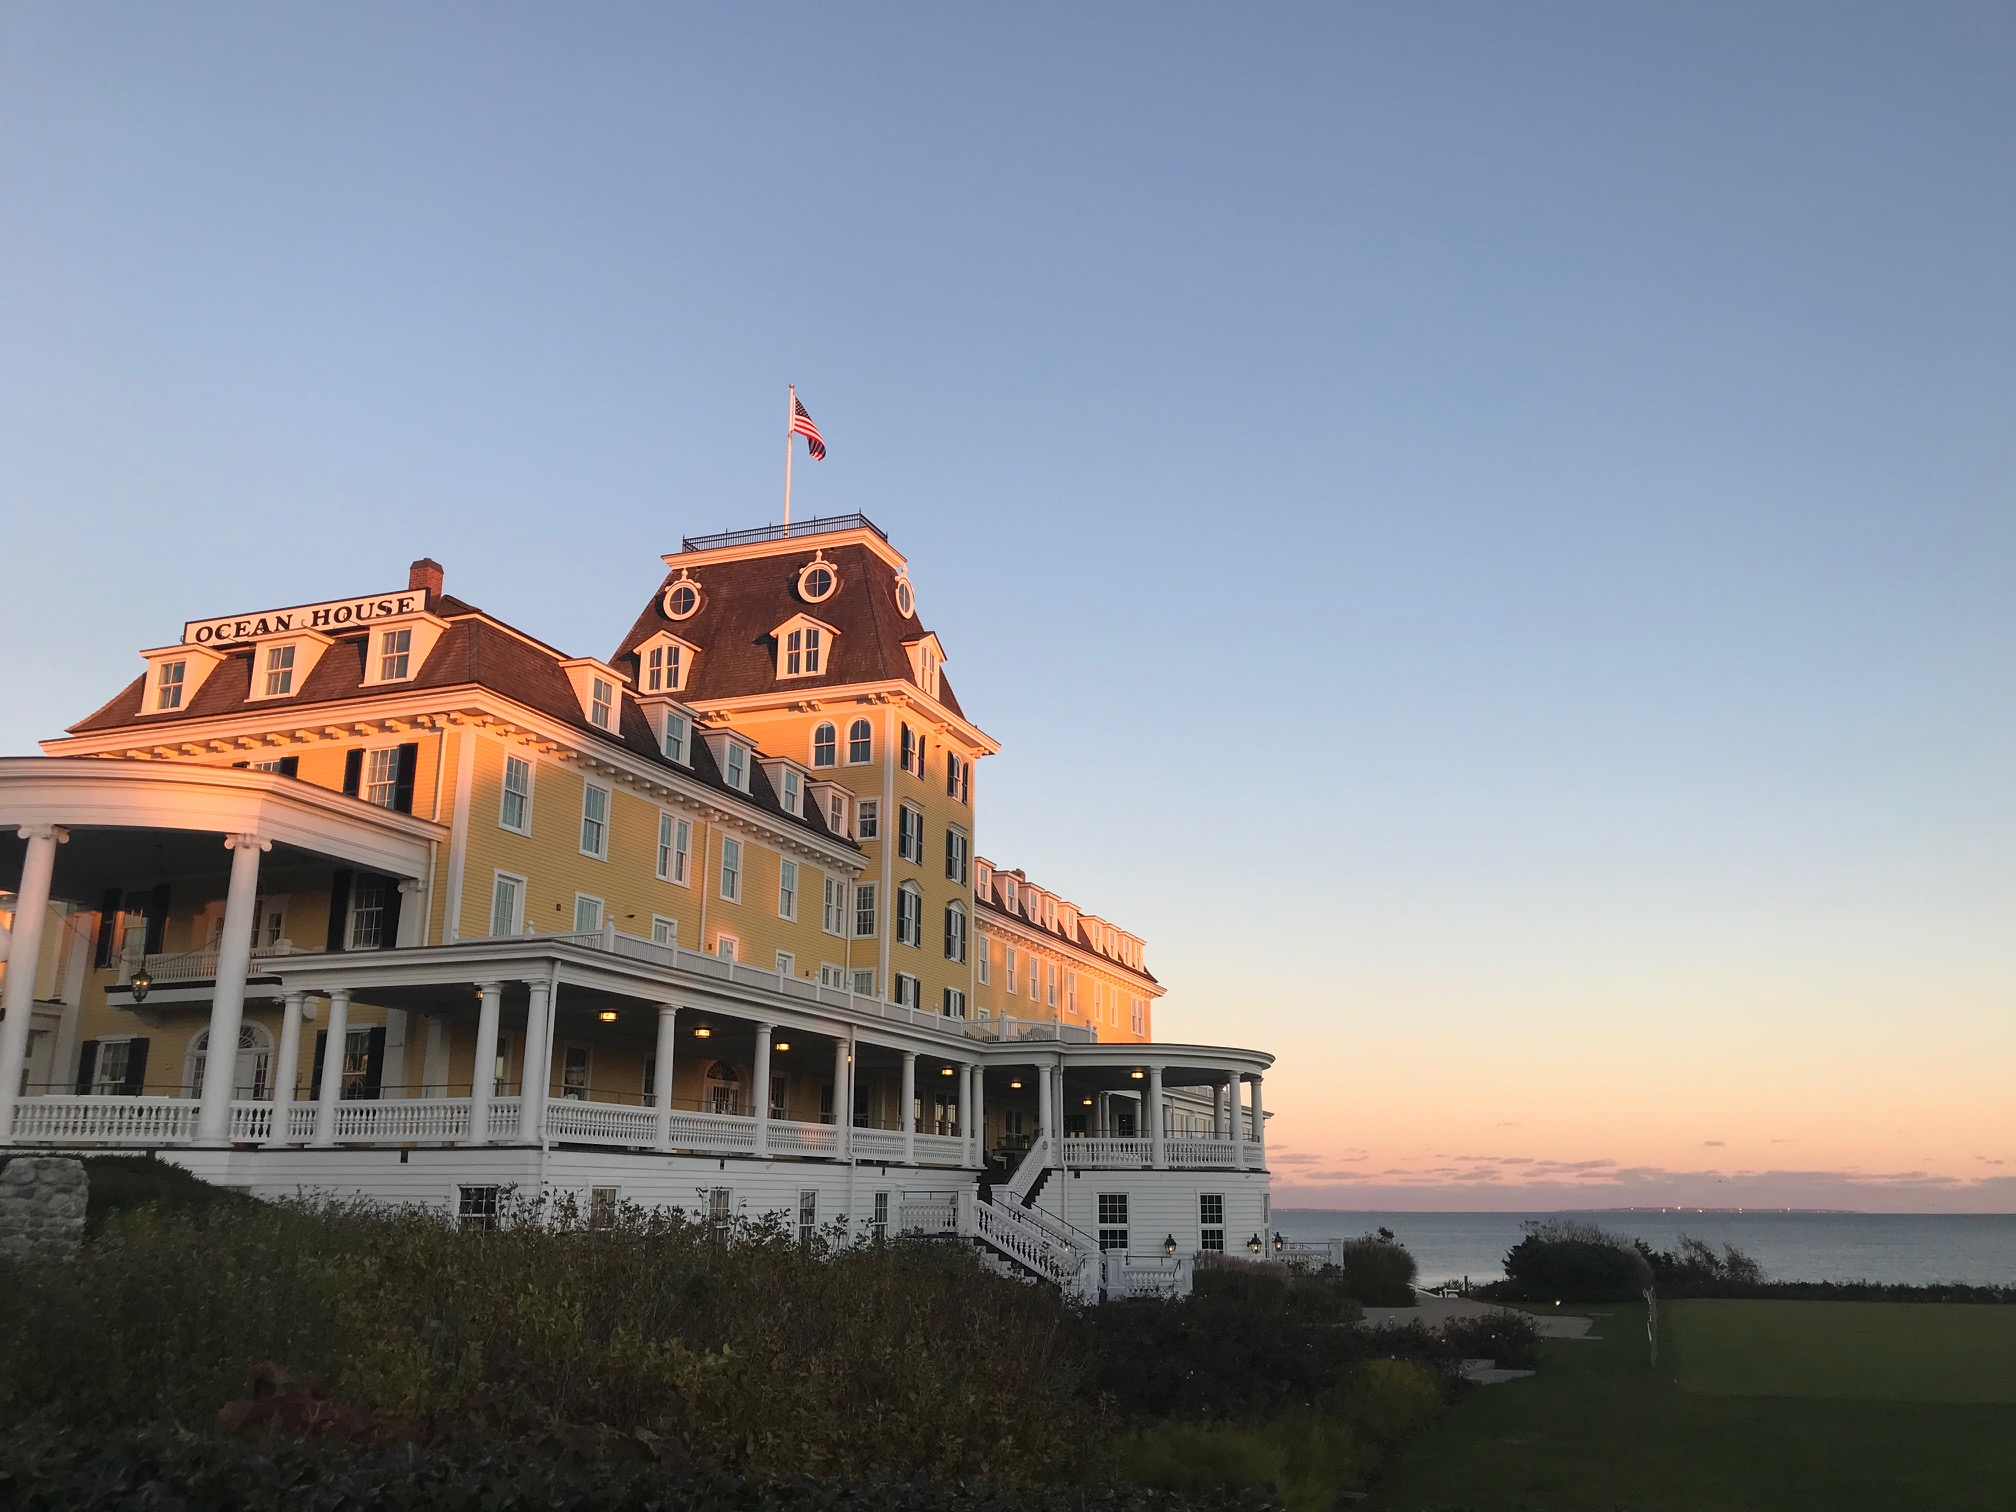 Ocean House looking stunning at sunset.